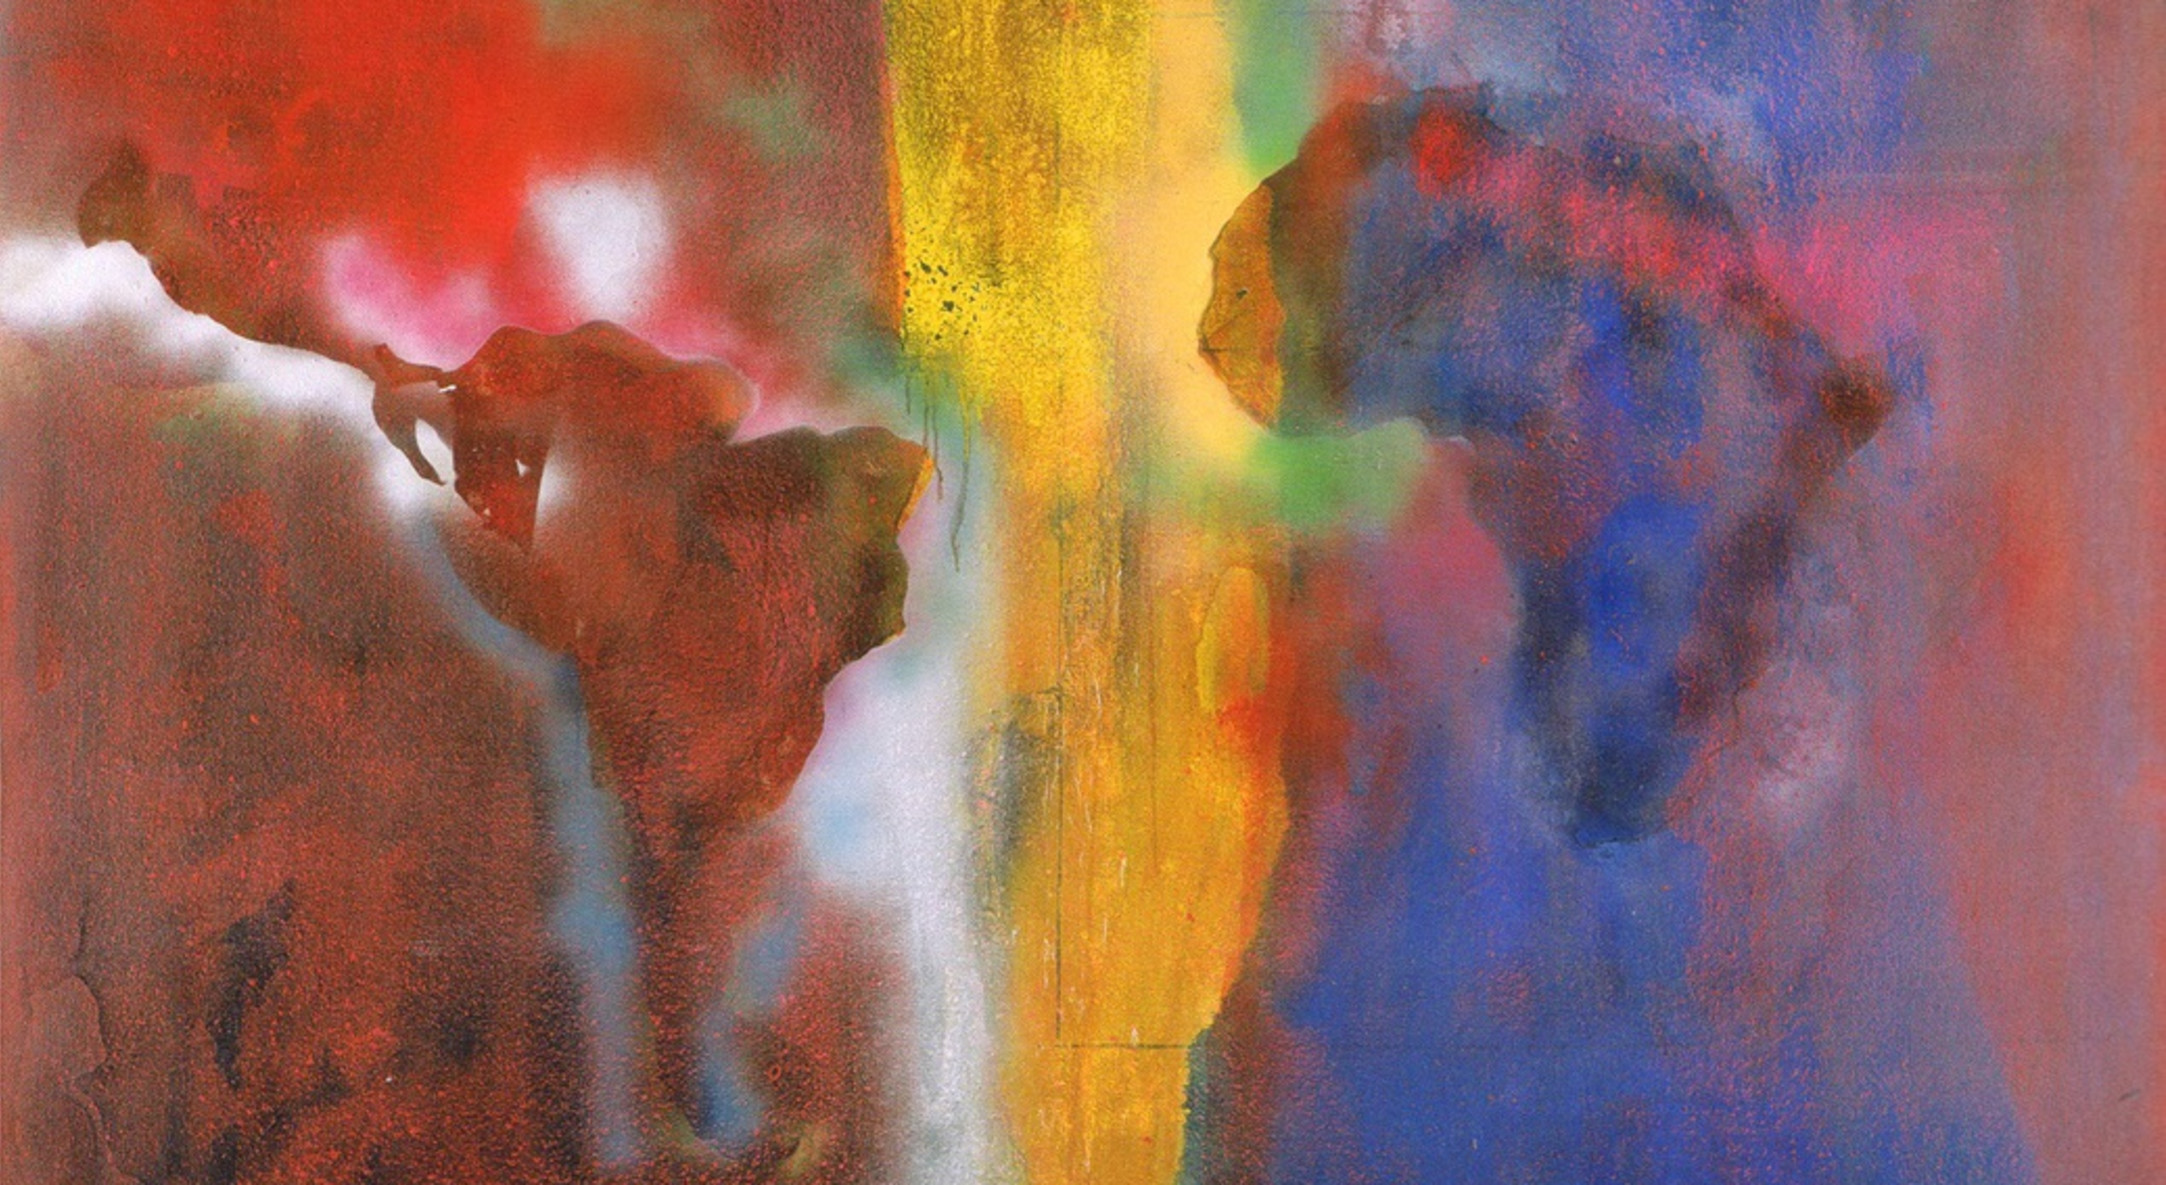 Detail of Frank Bowling, Night Journey, 1968-69, Acrylic on canvas, 328 x 269 cm, 129 1/8 x 105 7/8 in